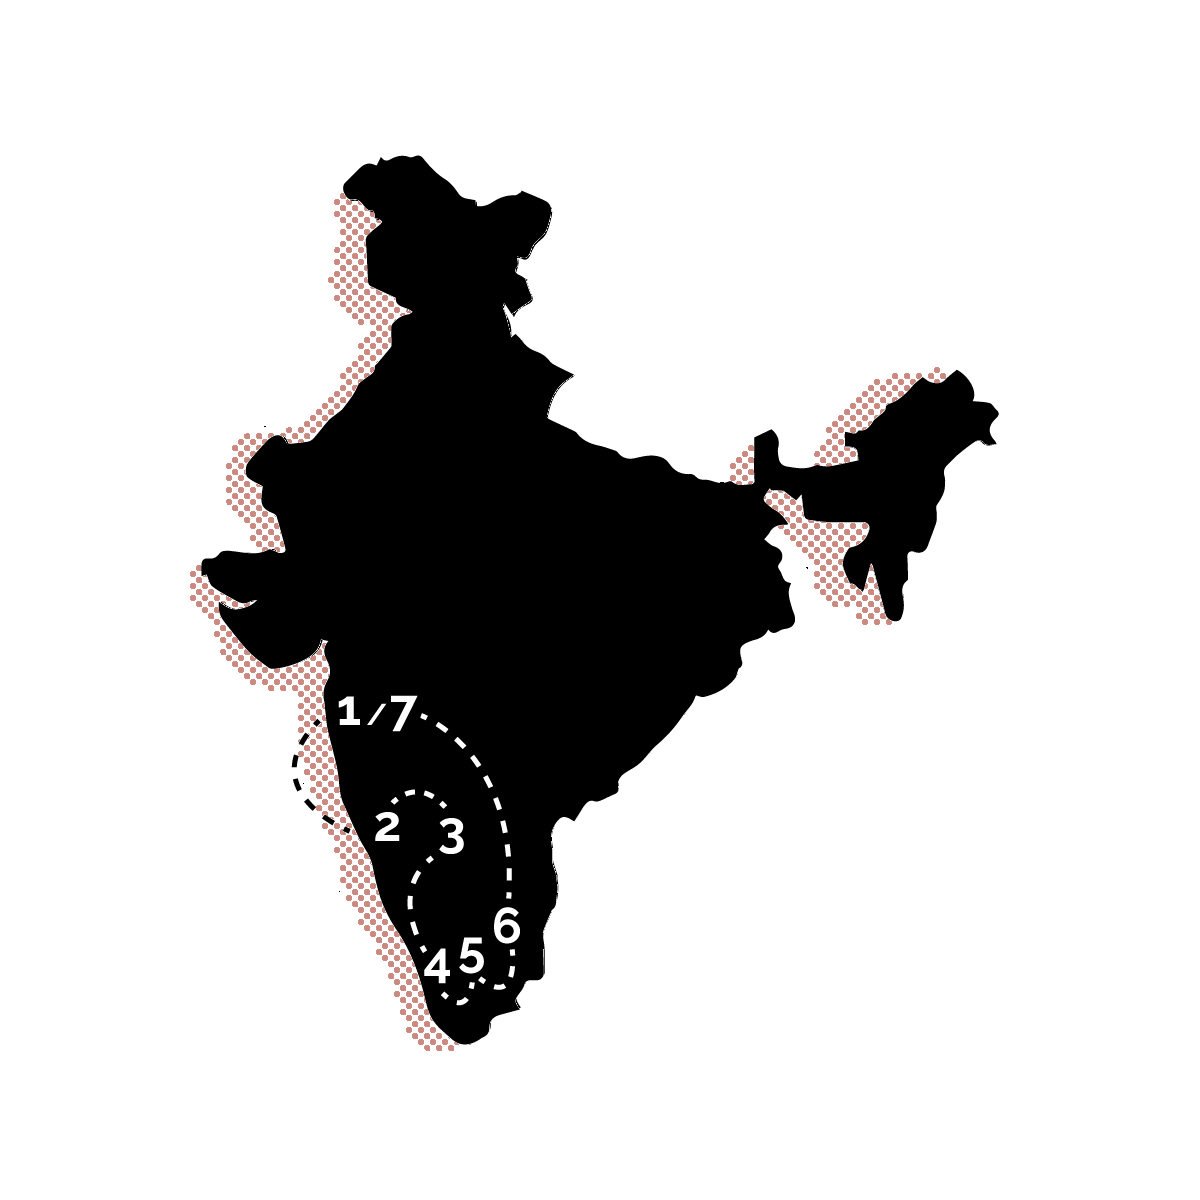 south-india-w-stops-+-colour.png